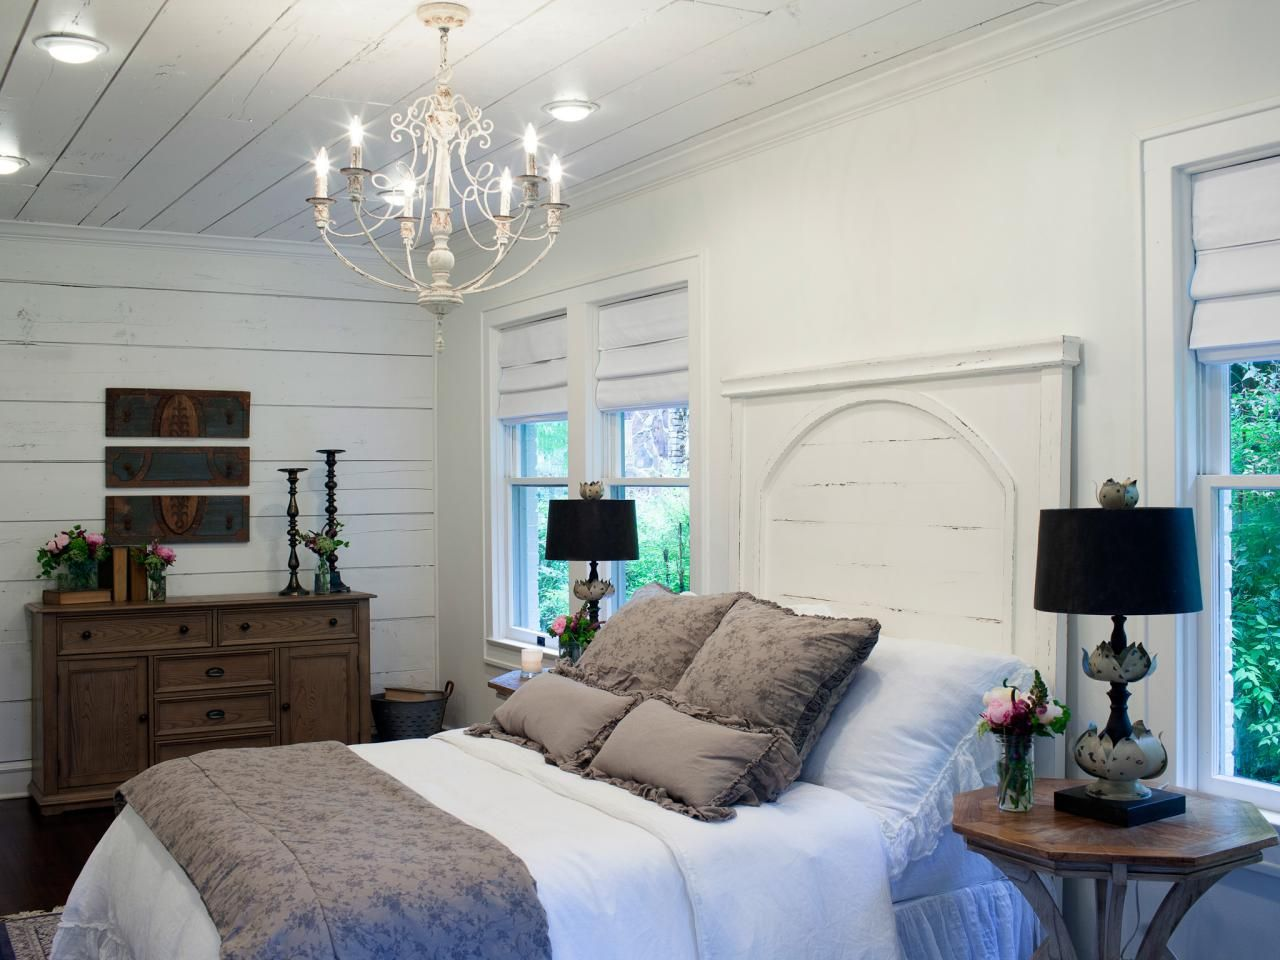 joanna gaines bedrooms photos hgtv 39 s fixer upper with chip and joanna gaines hgtv. Black Bedroom Furniture Sets. Home Design Ideas